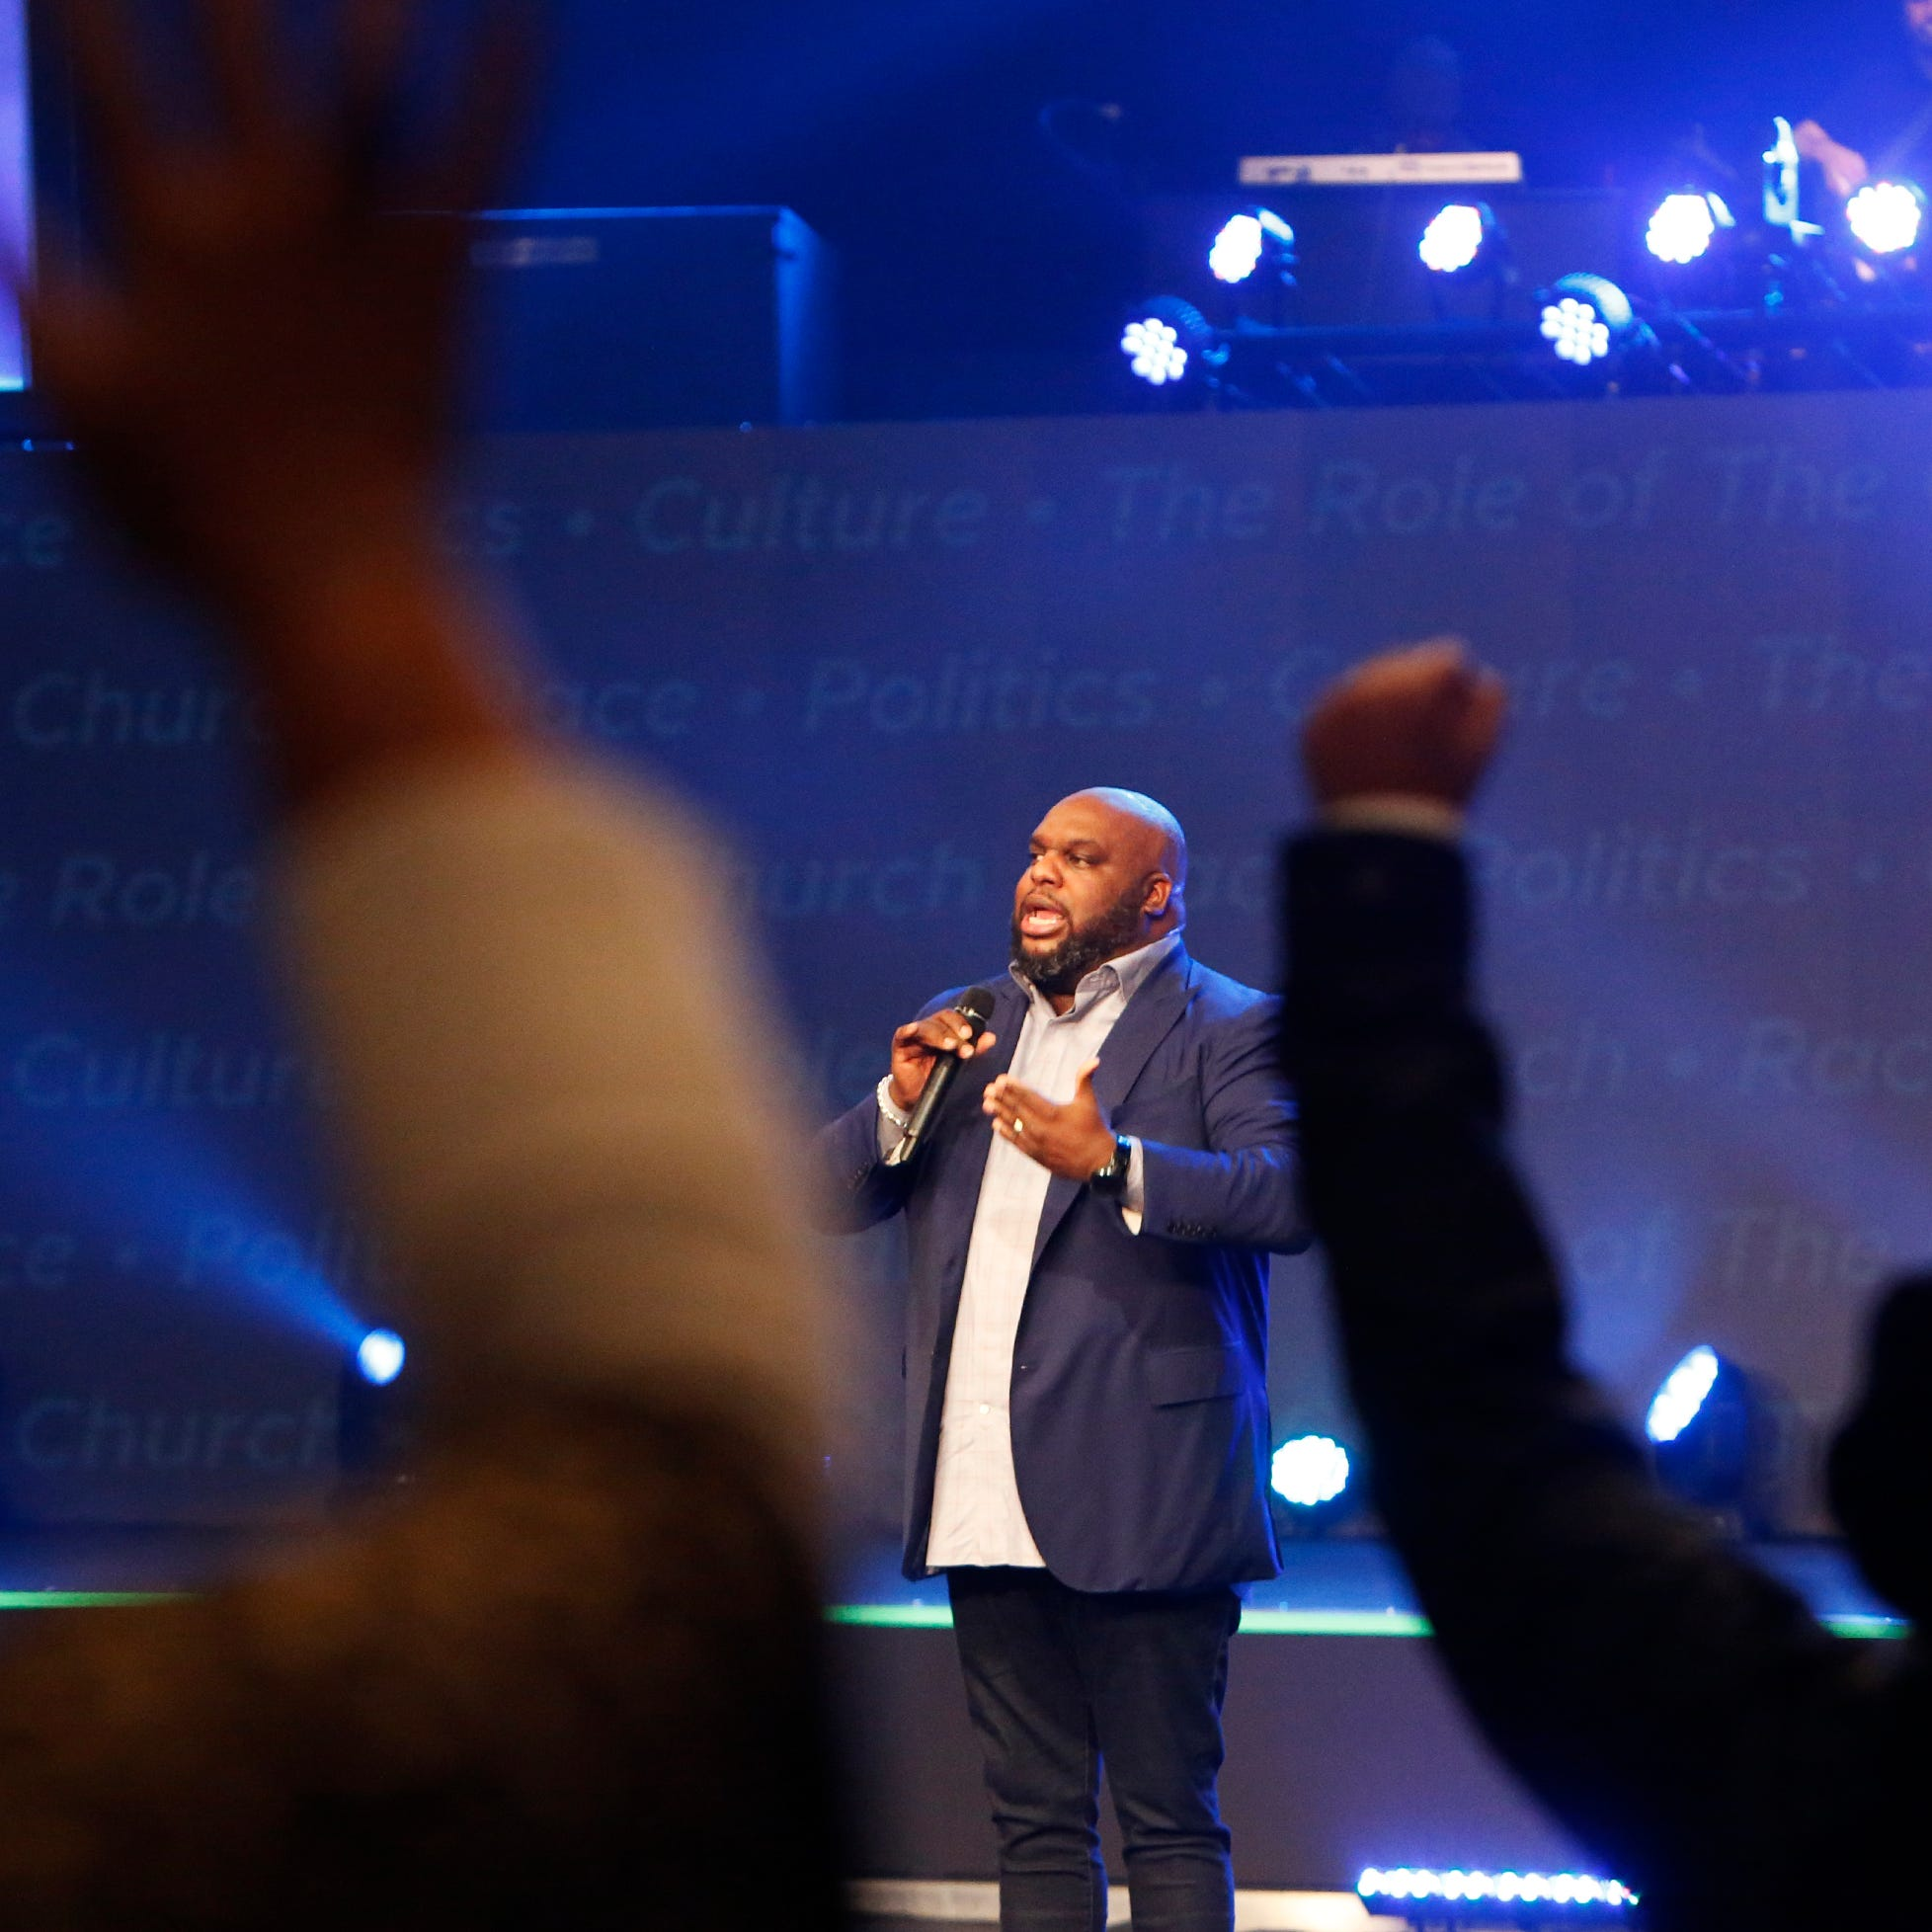 With tears, John Gray defends gift to wife: No Relentless Church money used to buy Lamborghini